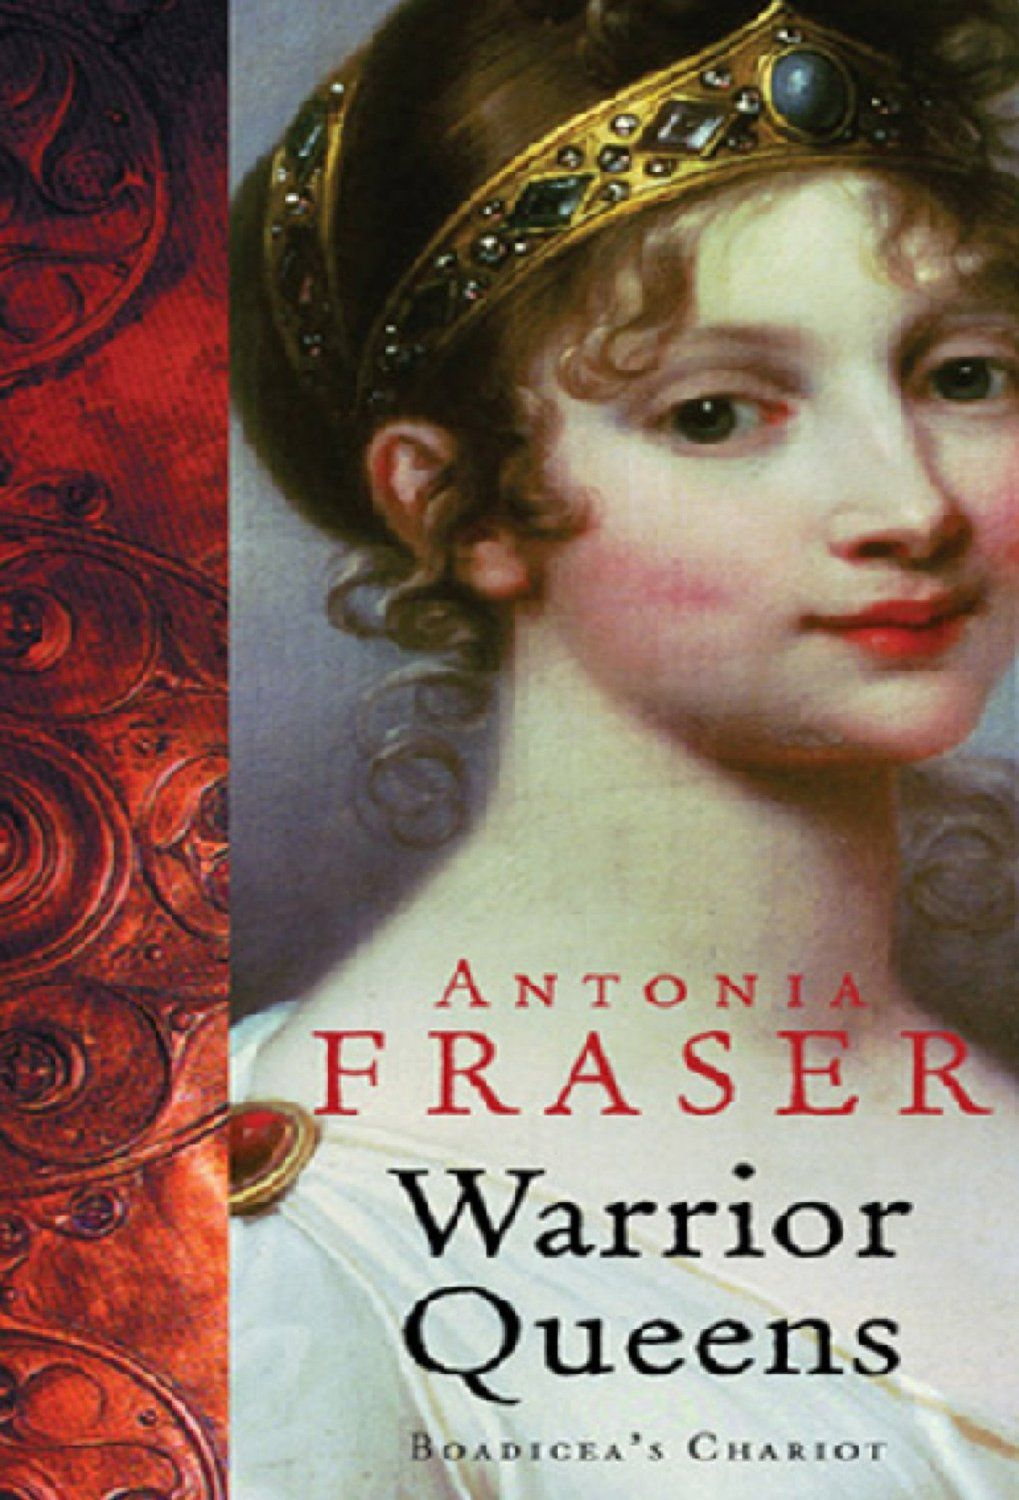 Warrior Queens: Boadicea's Chariot (women In History) Ebook: Antonia Fraser:  Amazon